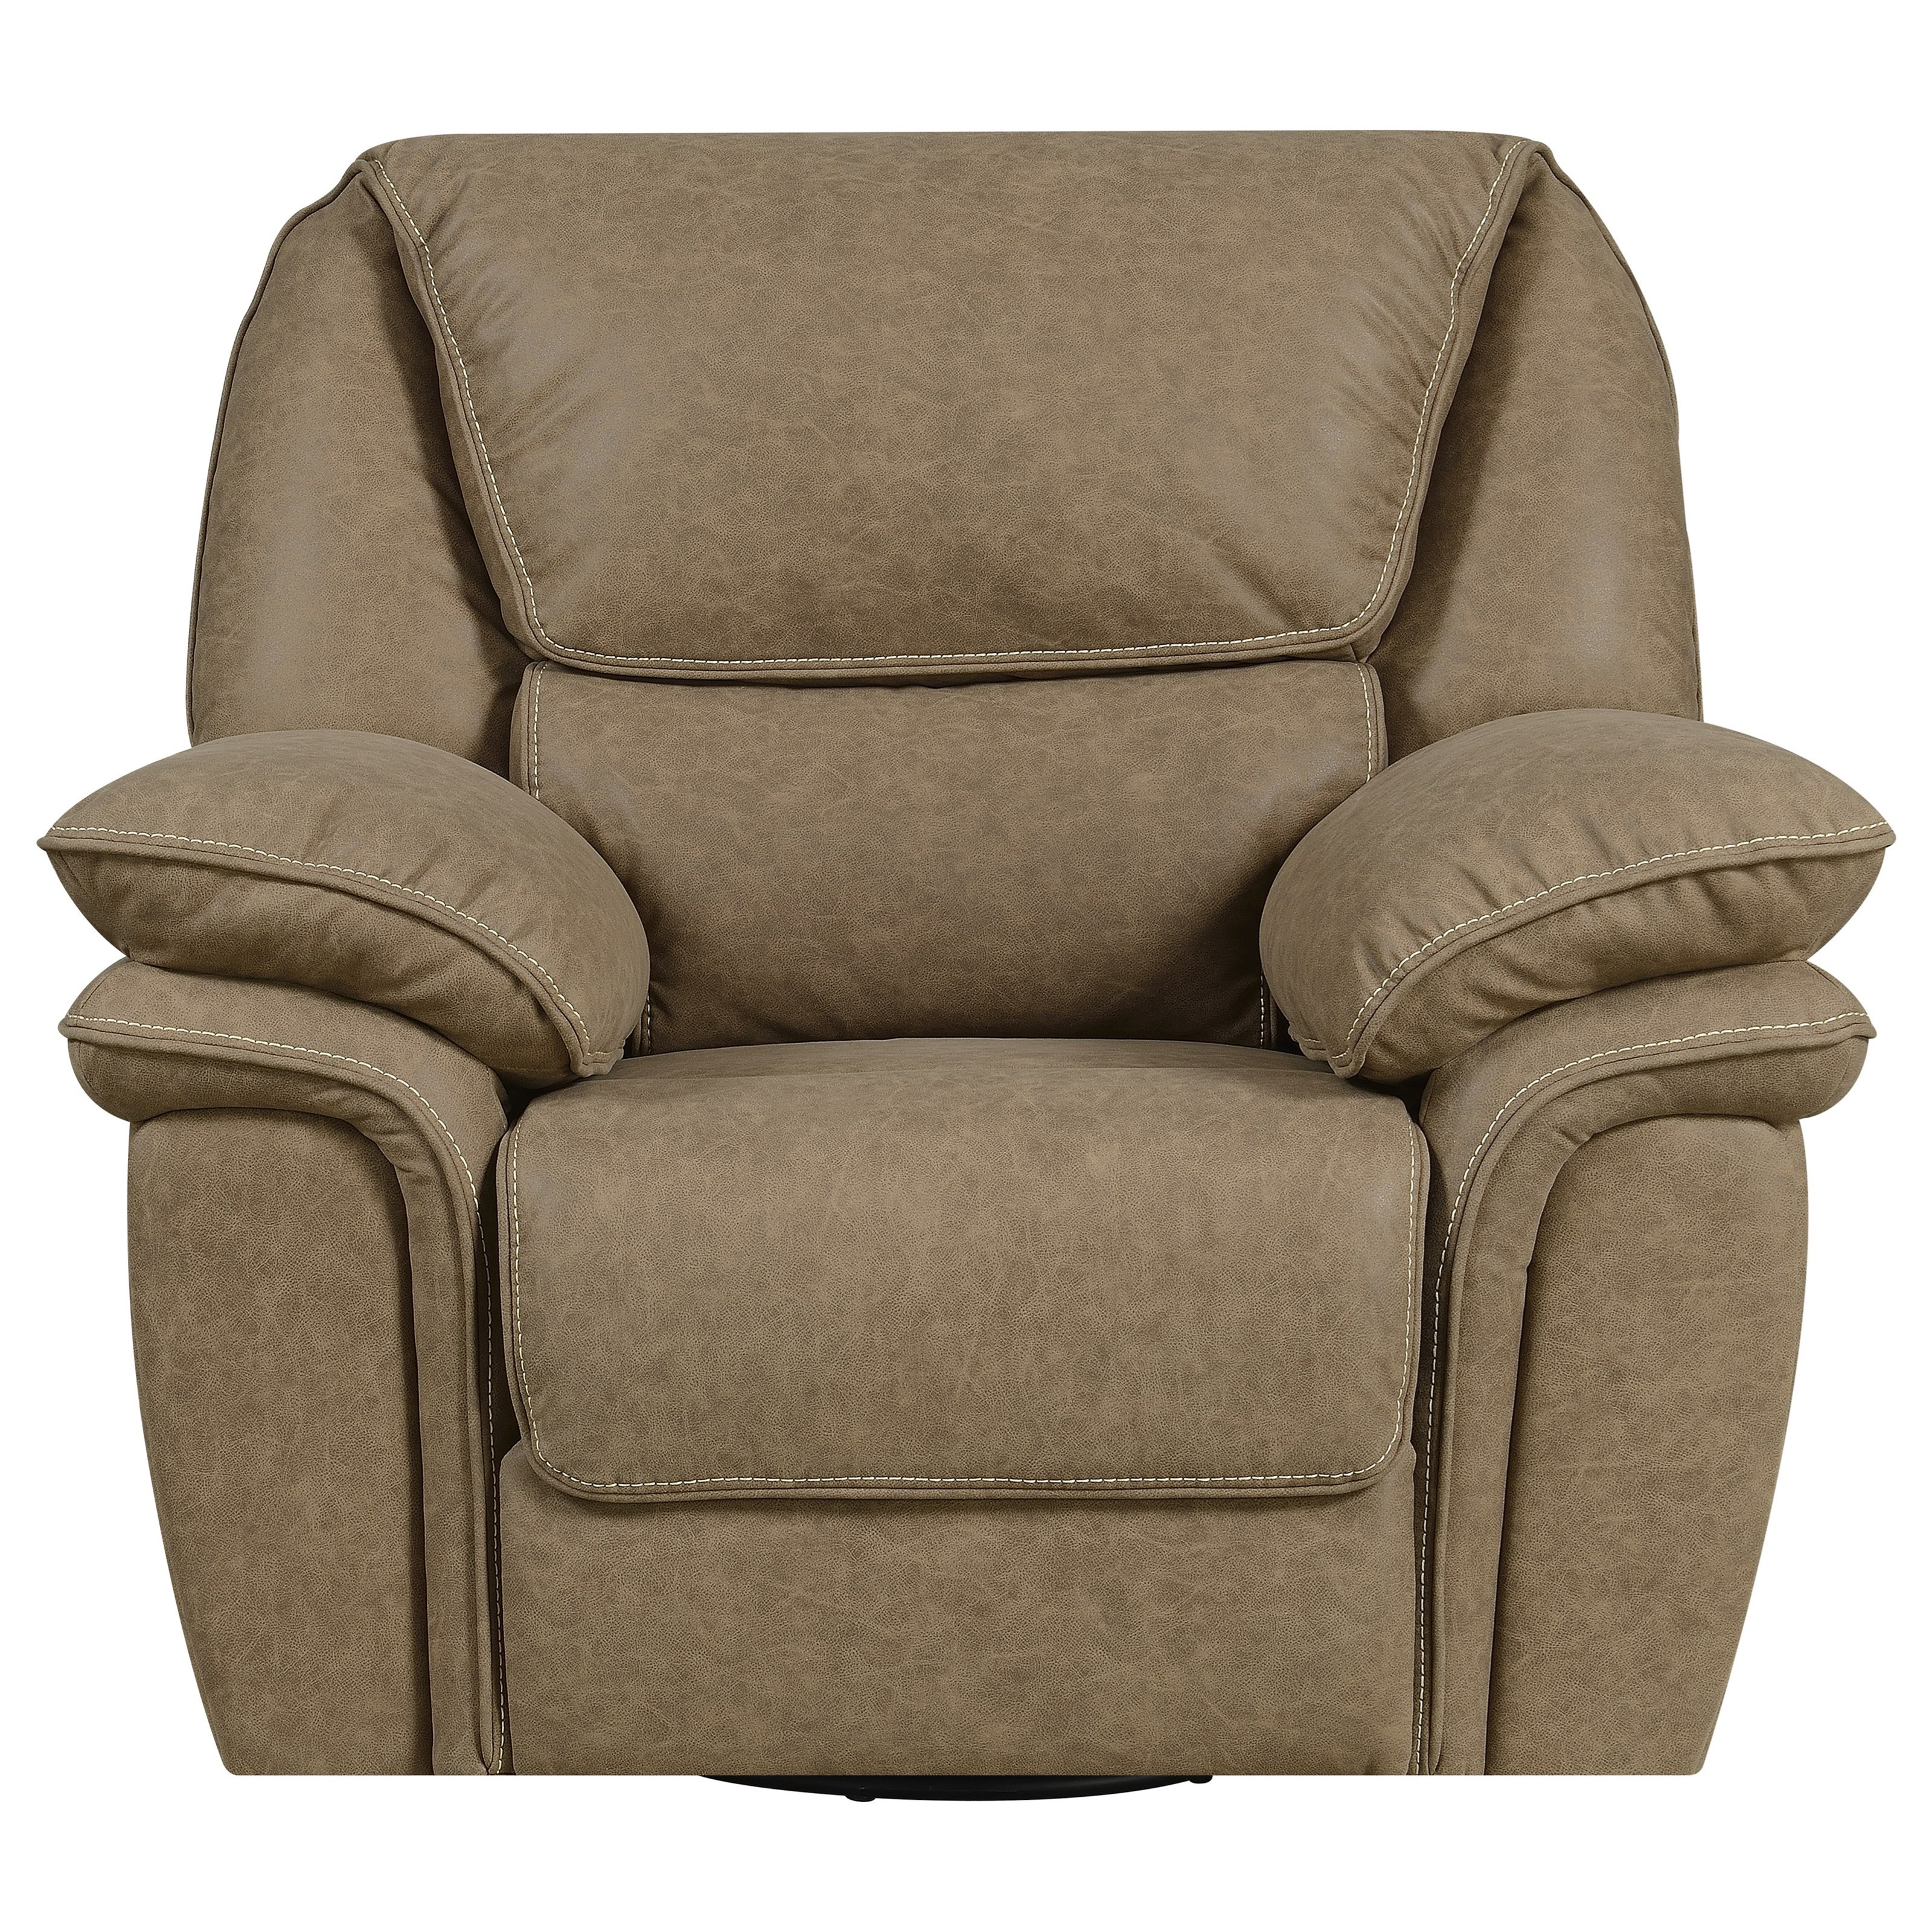 Allyn Swivel Glider Recliner by Emerald at Suburban Furniture